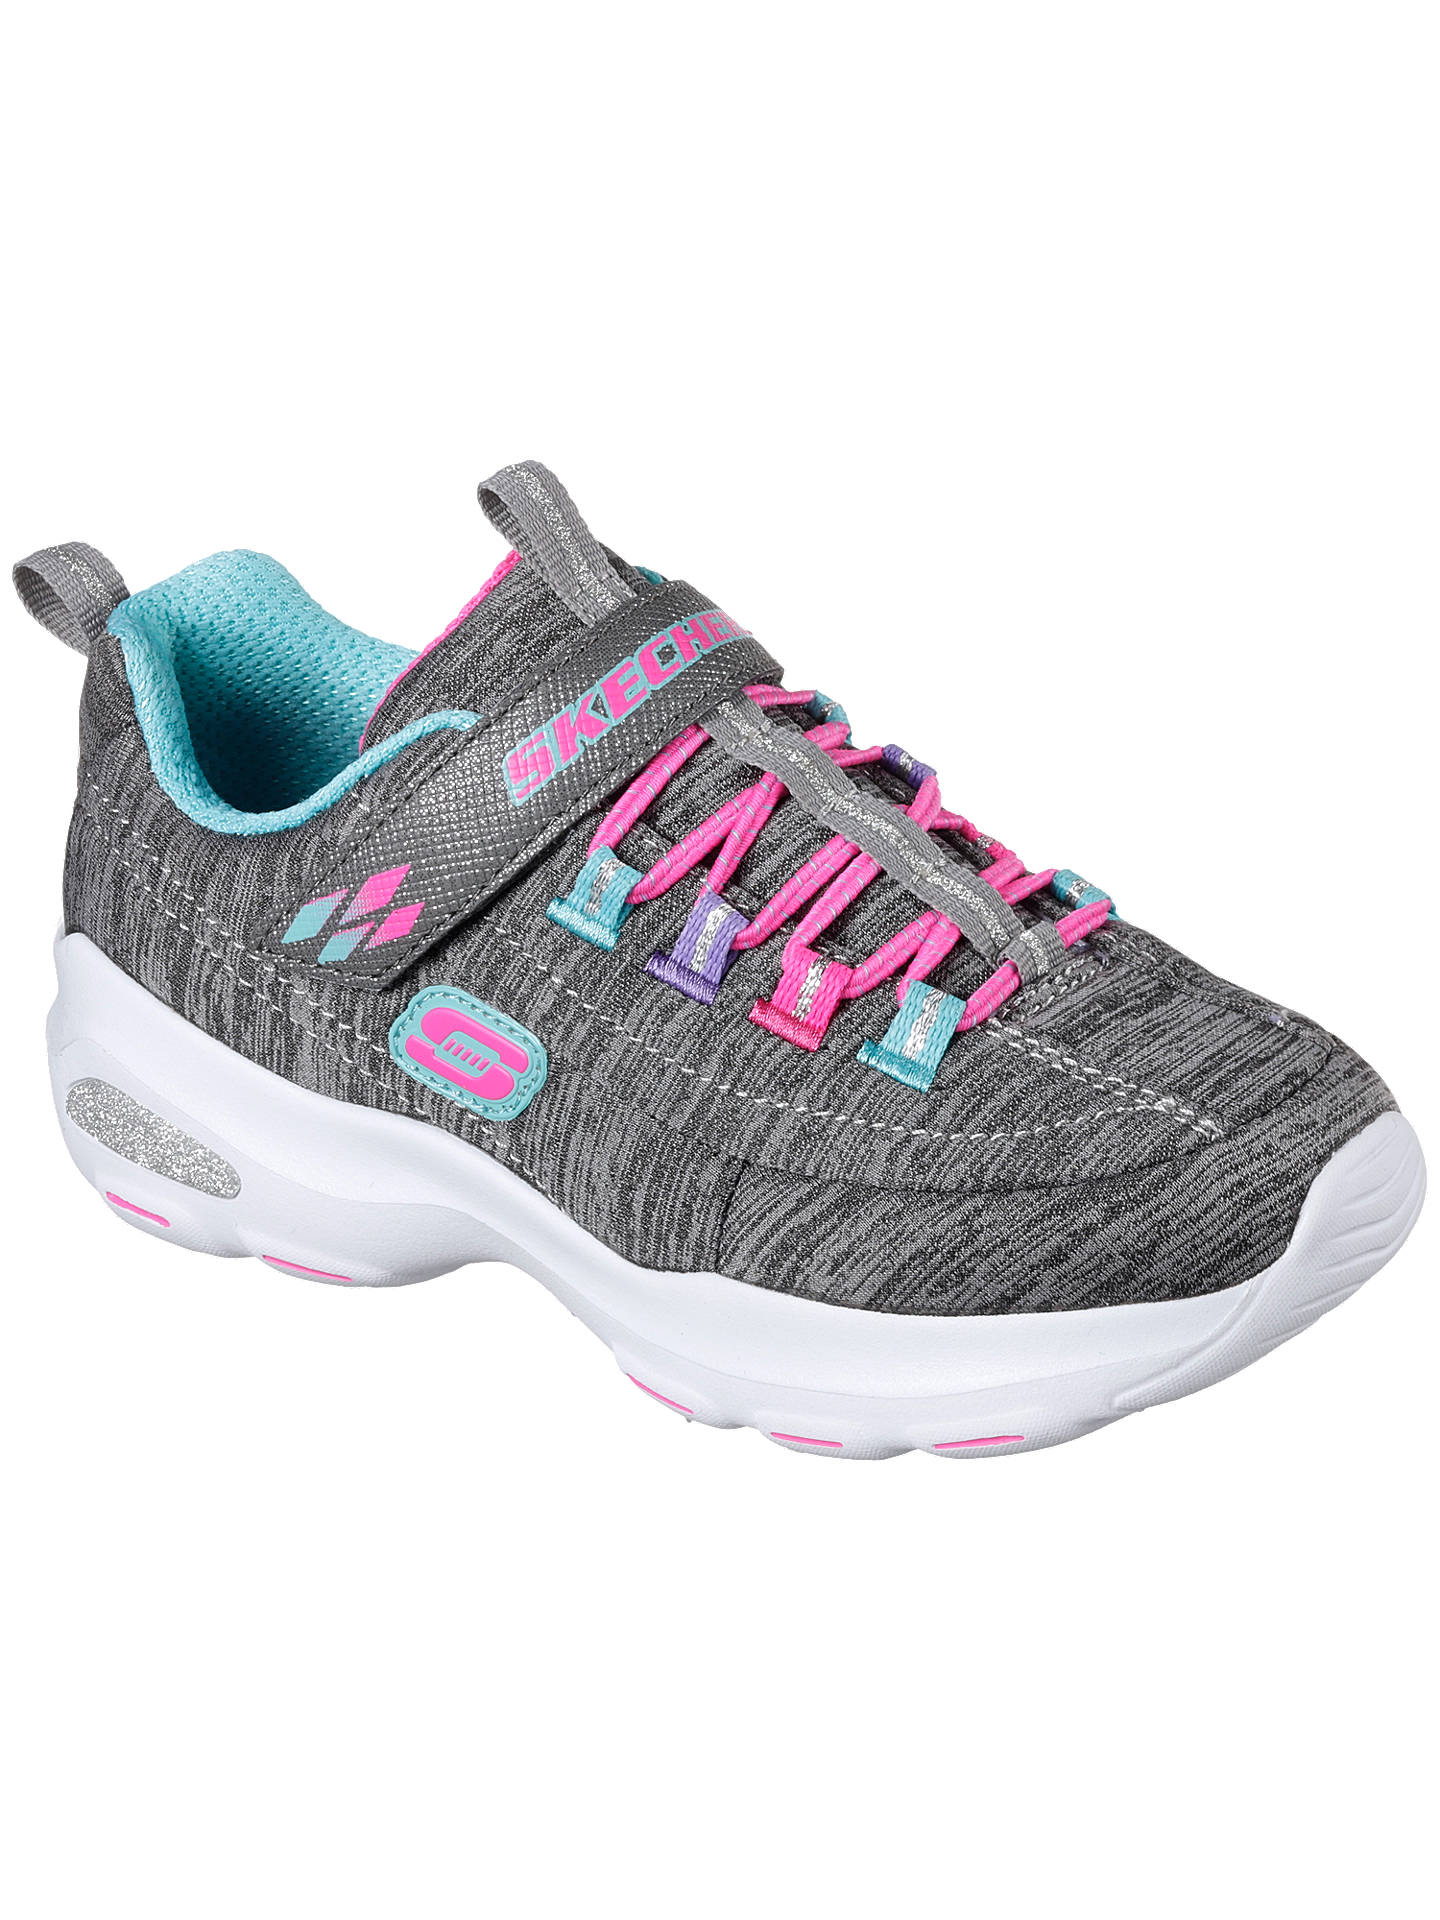 BuySkechers Children's D'Lite Ultra Meditative Trainers, Grey, 27 Online at johnlewis.com